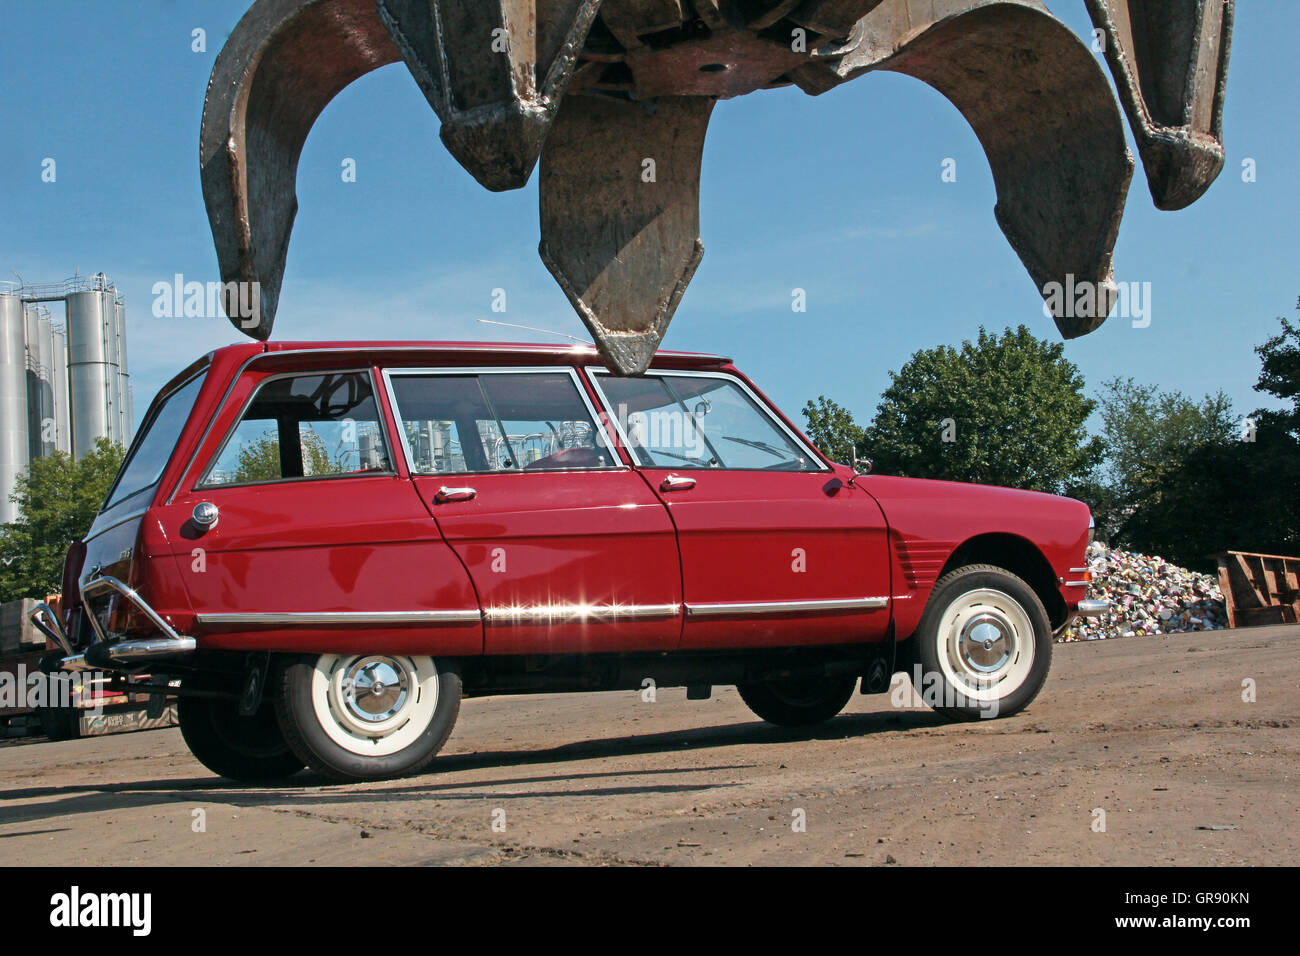 citroen ami 6 break club built in 1968 at a junkyard stock photo royalty free image 117597417. Black Bedroom Furniture Sets. Home Design Ideas